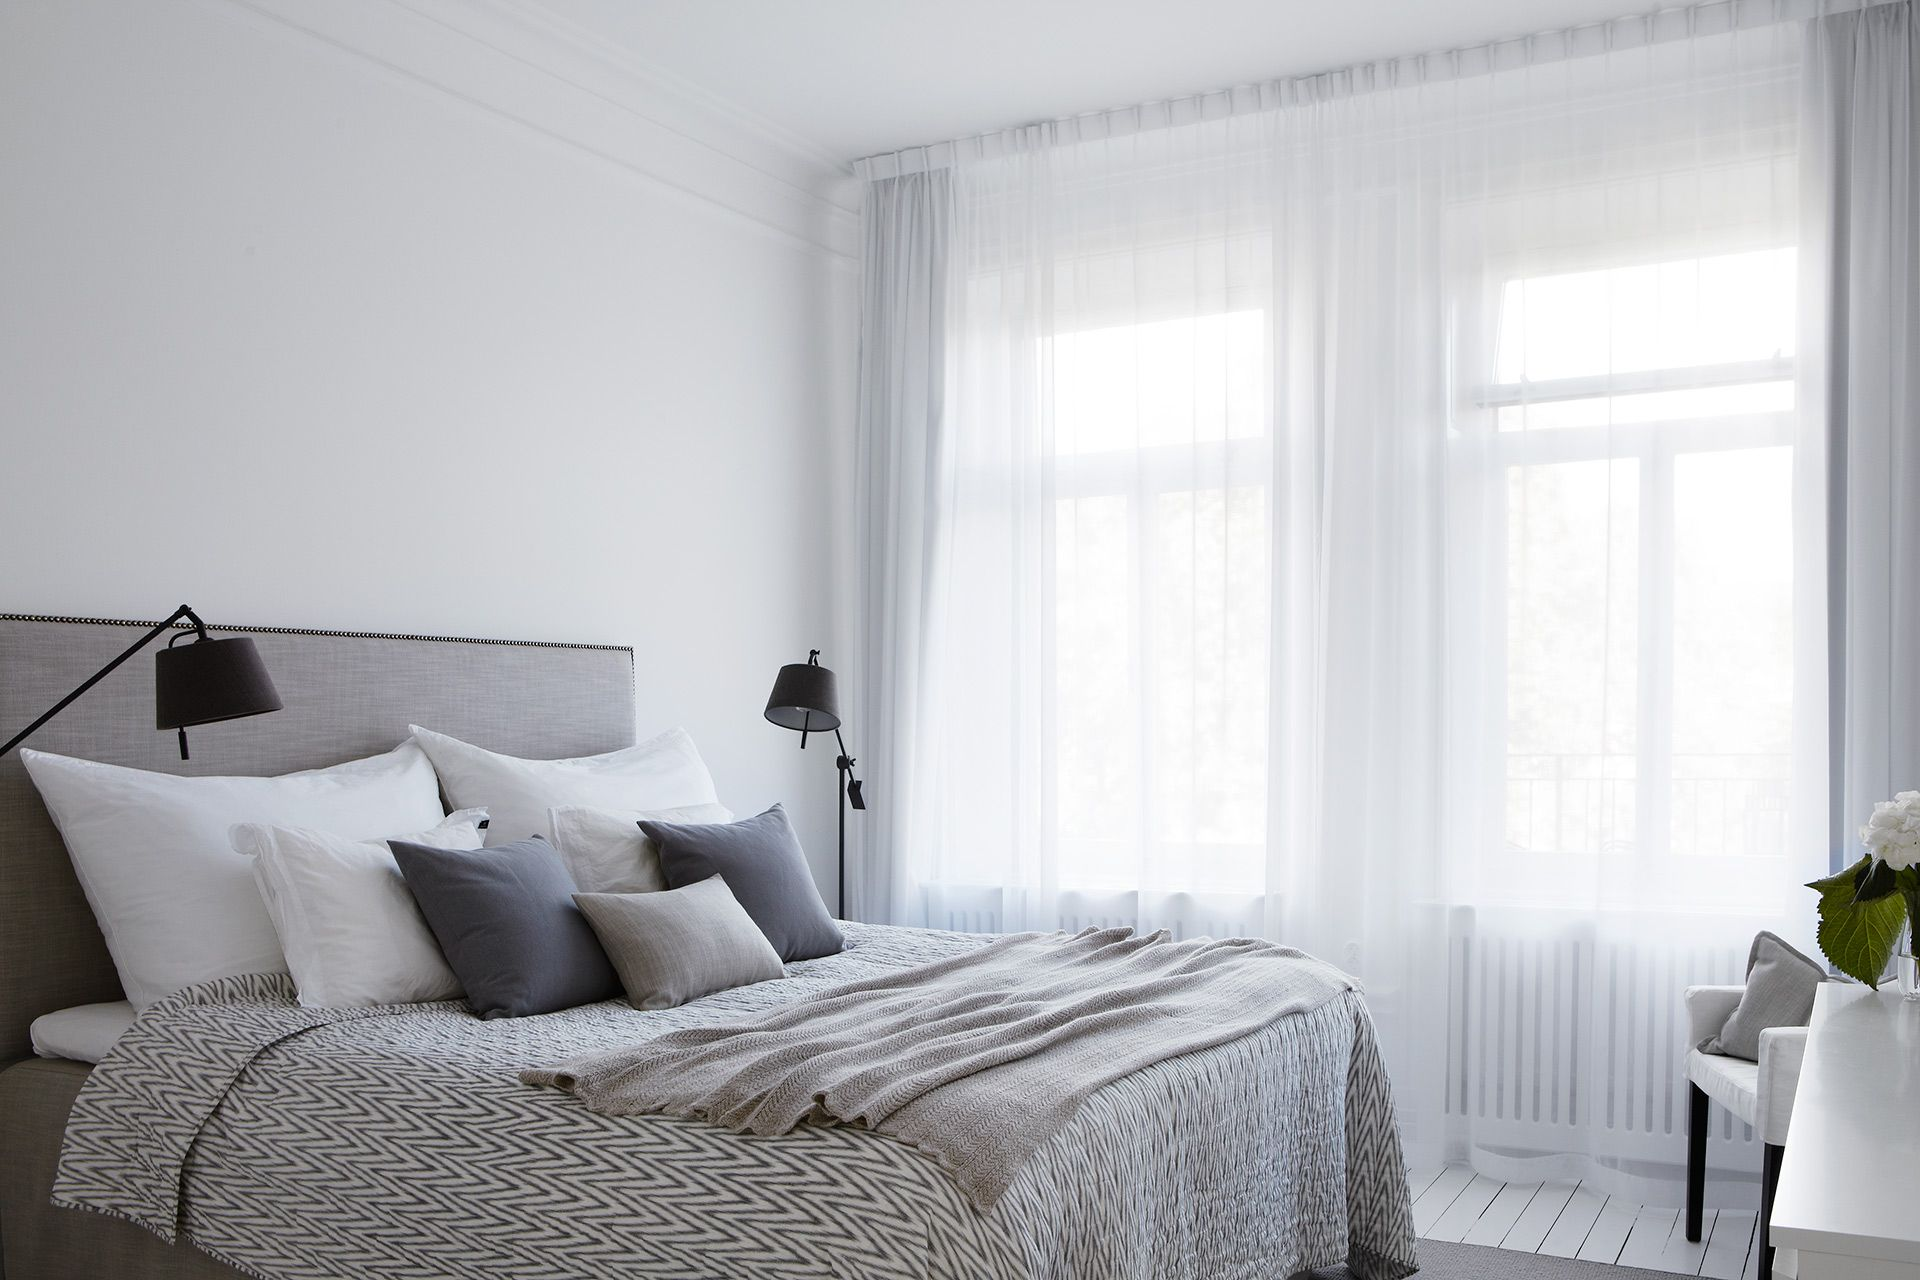 2 window bedroom ideas  modern minimalisme in een prachtig klassiek appartement  stockholm